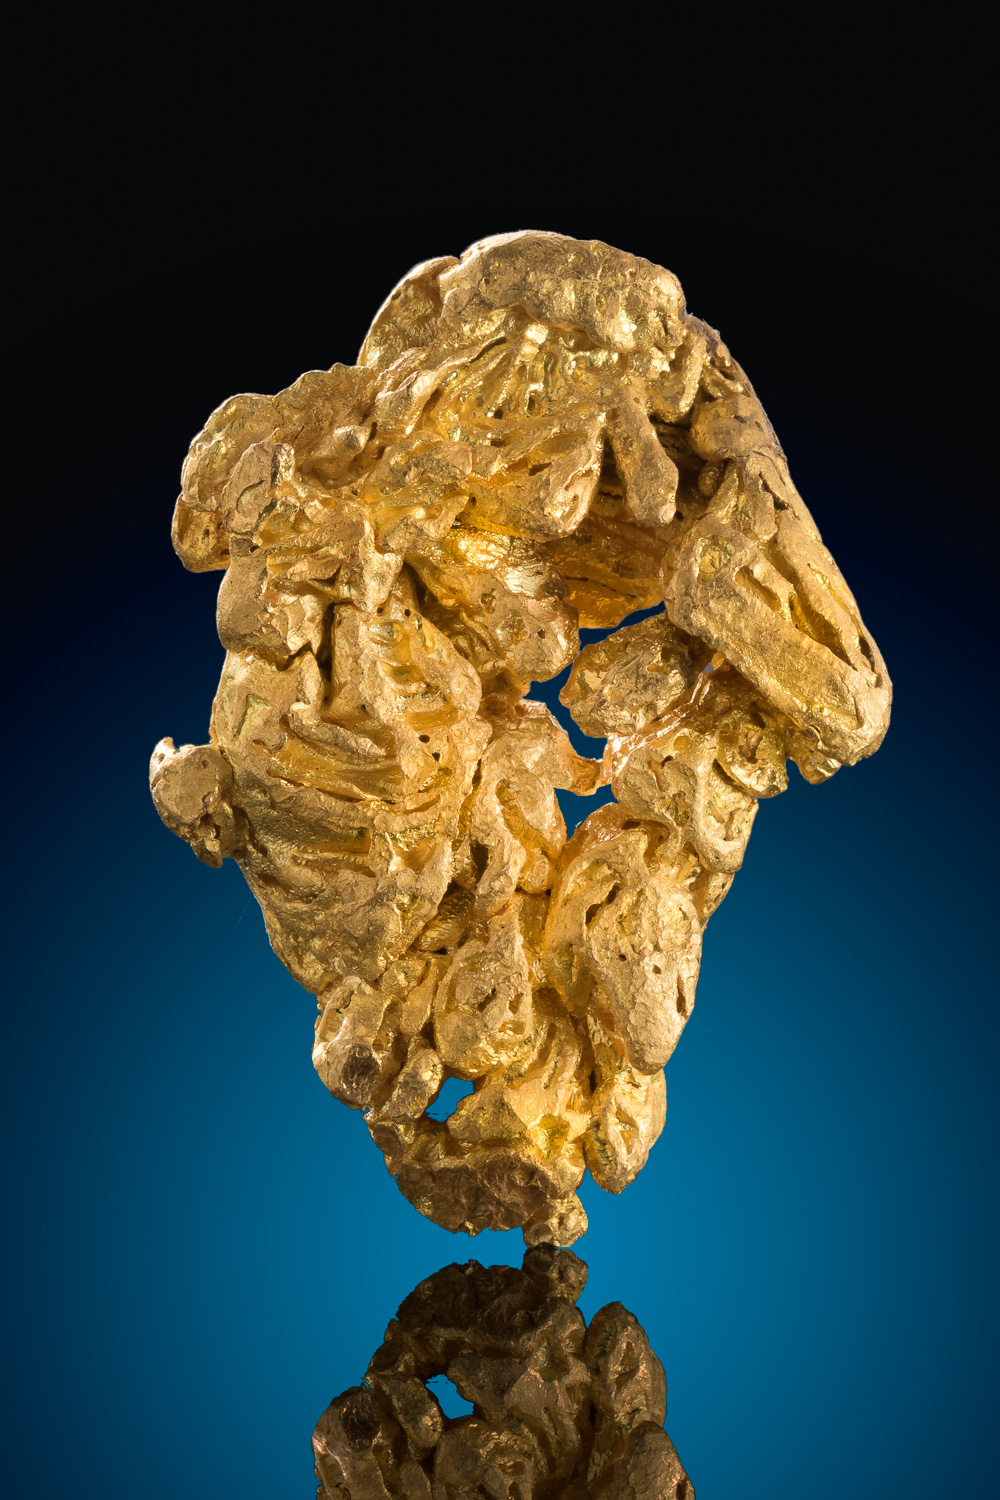 Large and Intricate Gold Nugget Crystal - Alta Floresta, Brazil